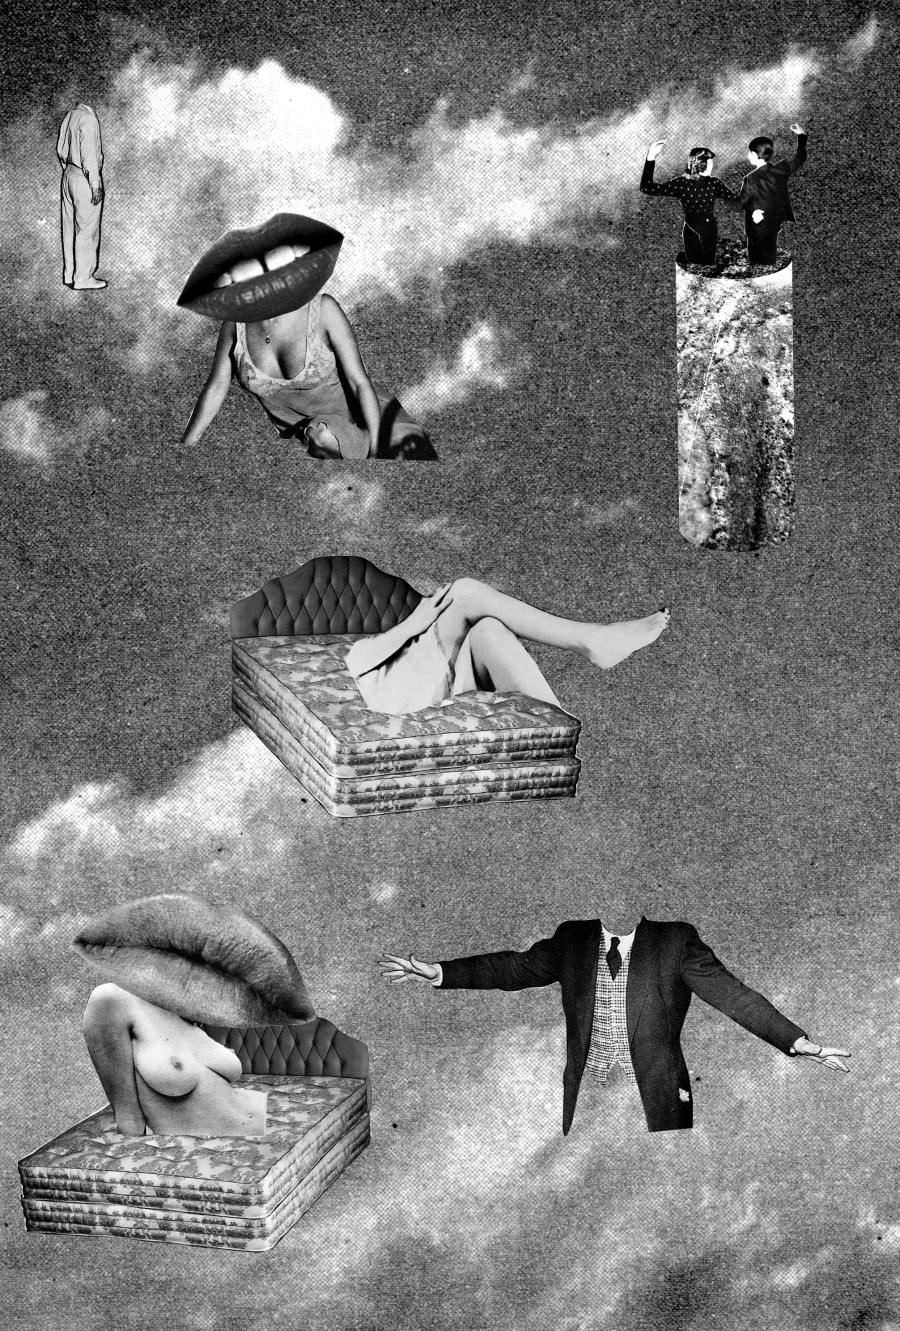 the influence of dadaism on surrealism and Surrealism flourished as a reaction to dadaism, but rather than the negative approach dadaism had, surrealists developed a constructive approach in sharing by forcing himself to work under very strict conditions, masson would for example draw under the influence of drugs or after long periods of time.